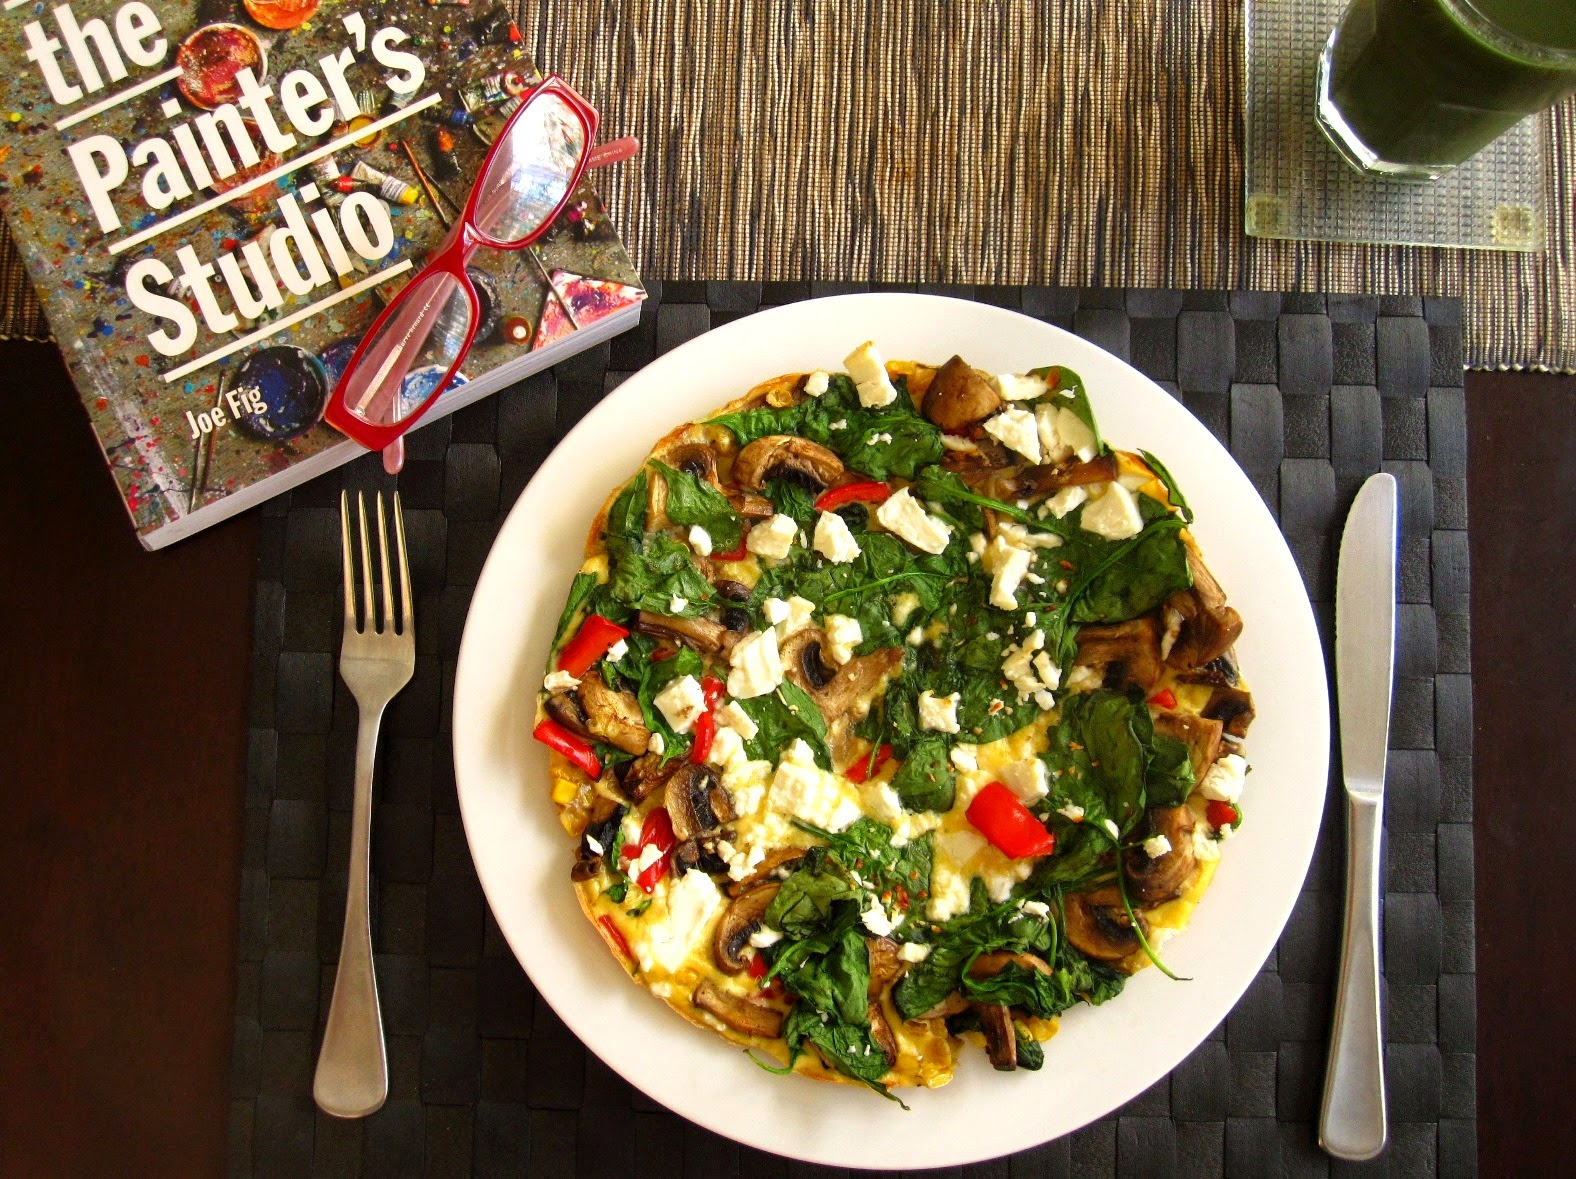 Aerial view of a dining table showing a vegetable frittata, a spiralina juice and a copy of the book 'Inside the Painter's Studio' with a pair of reading glasses on top of it.